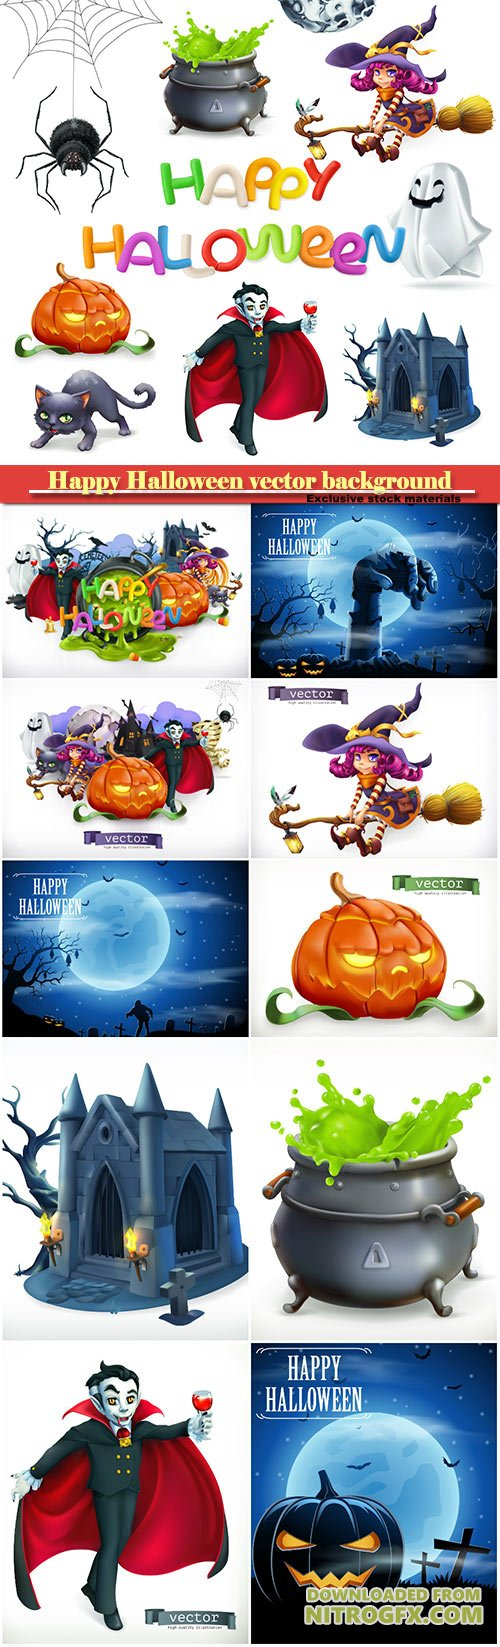 Happy Halloween vector background, pumpkin, spider, cat, witch, vampire, crypt and lettering, 3d vector icon set